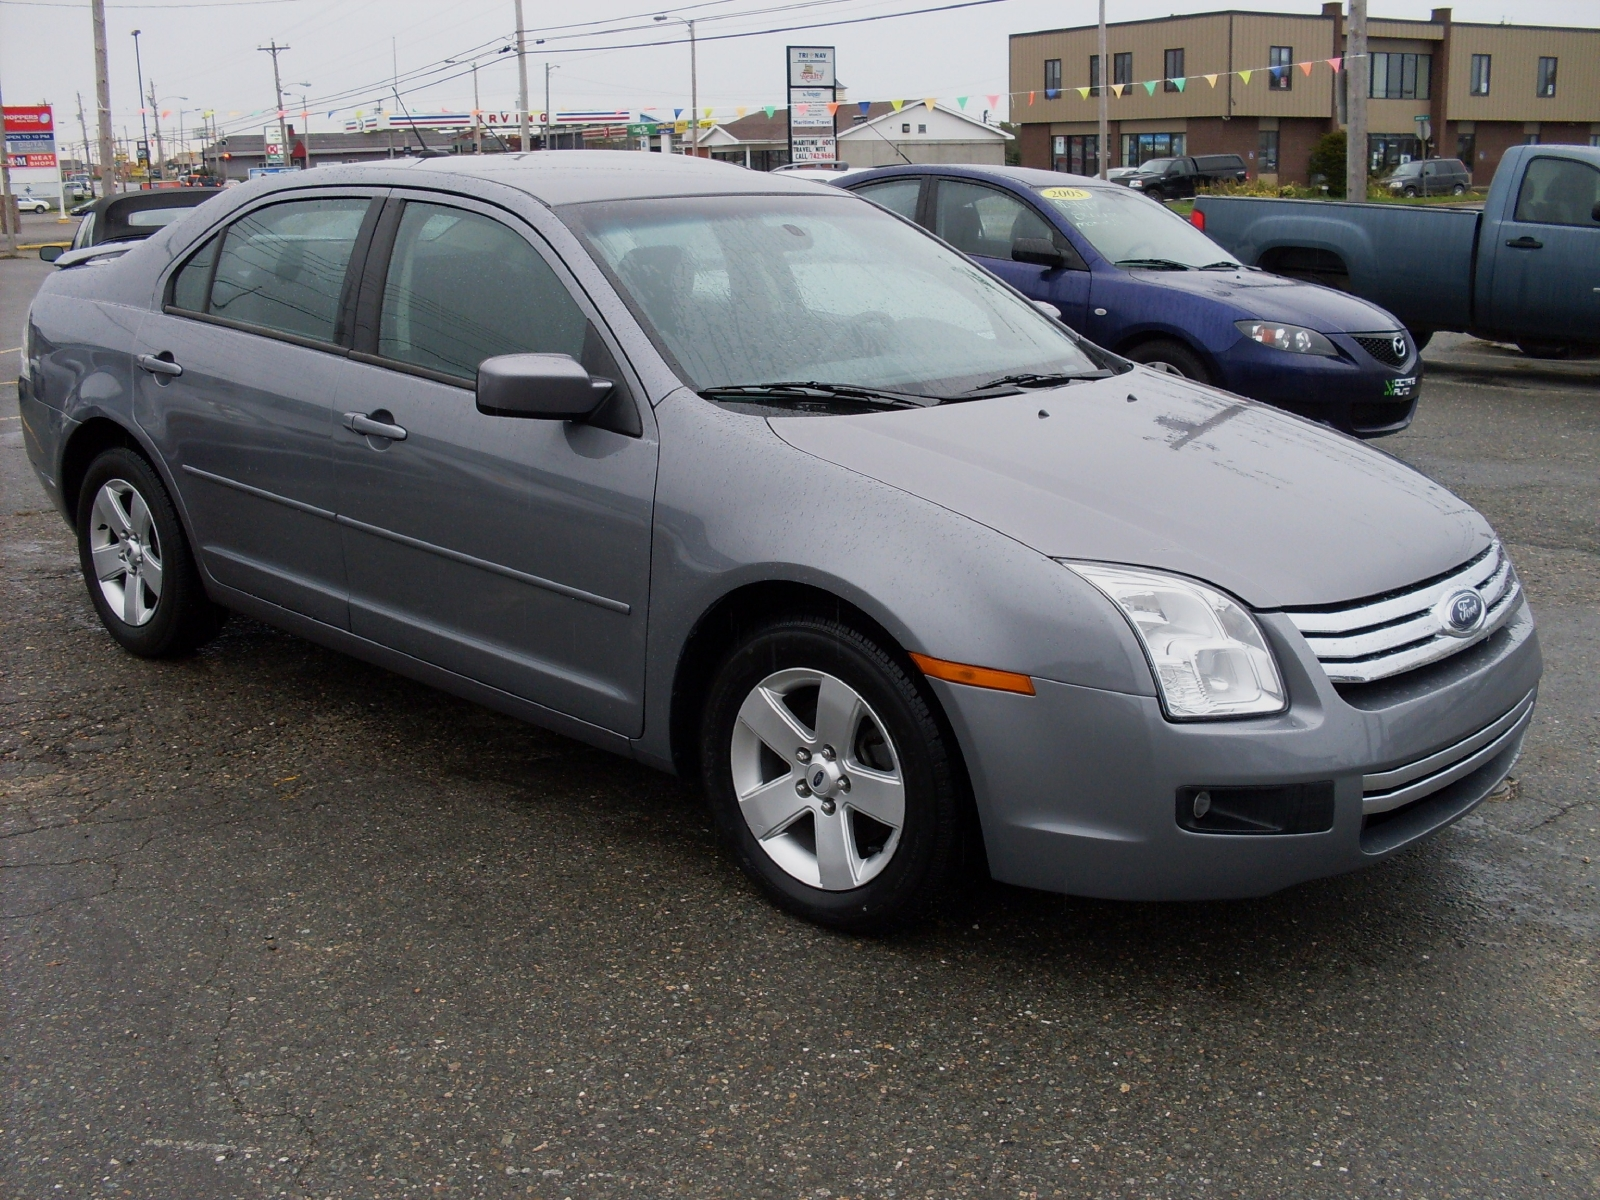 2007 ford fusion image 10